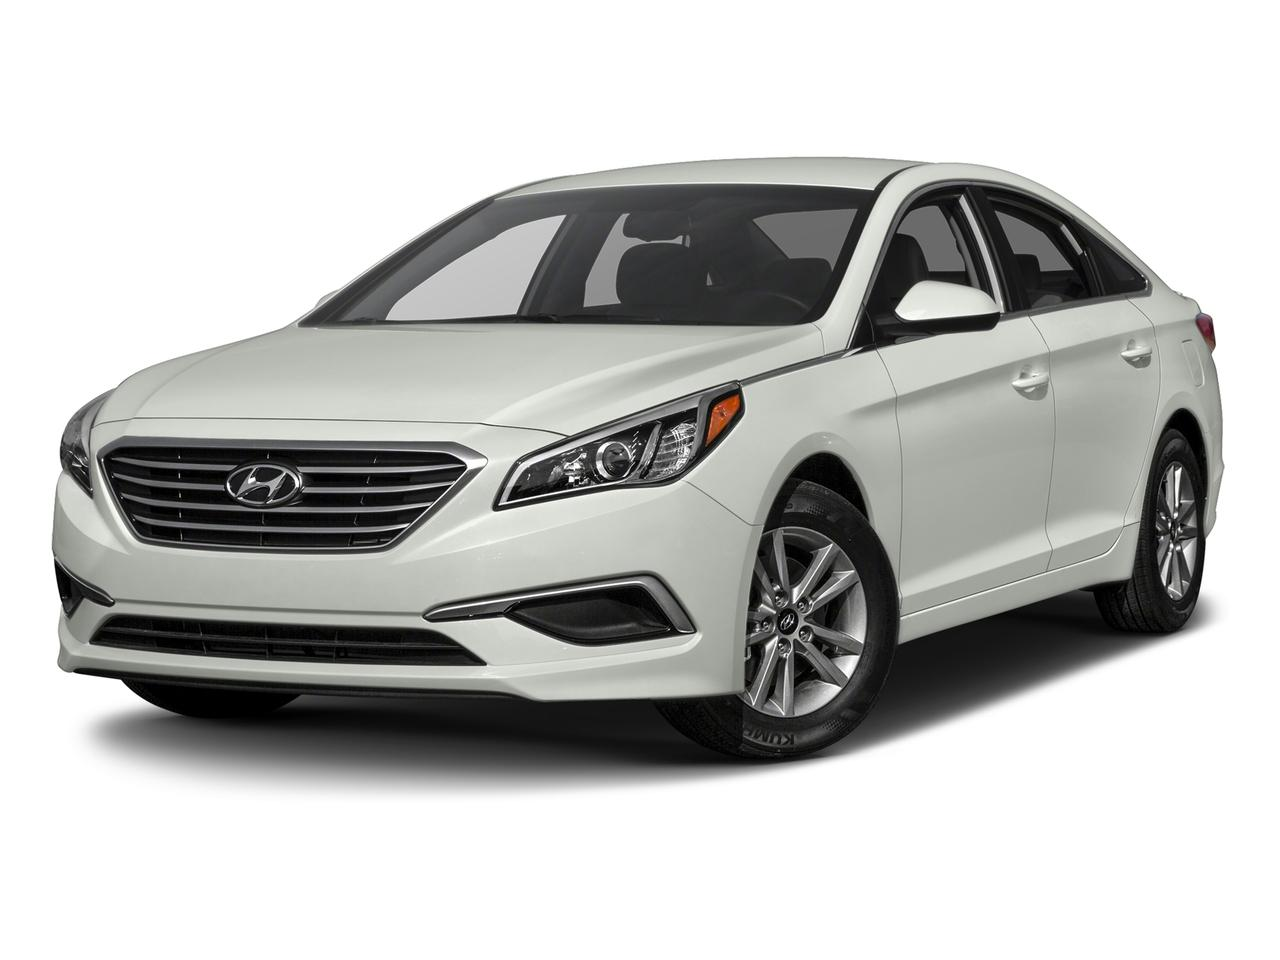 2017 Hyundai Sonata Vehicle Photo in Casper, WY 82609